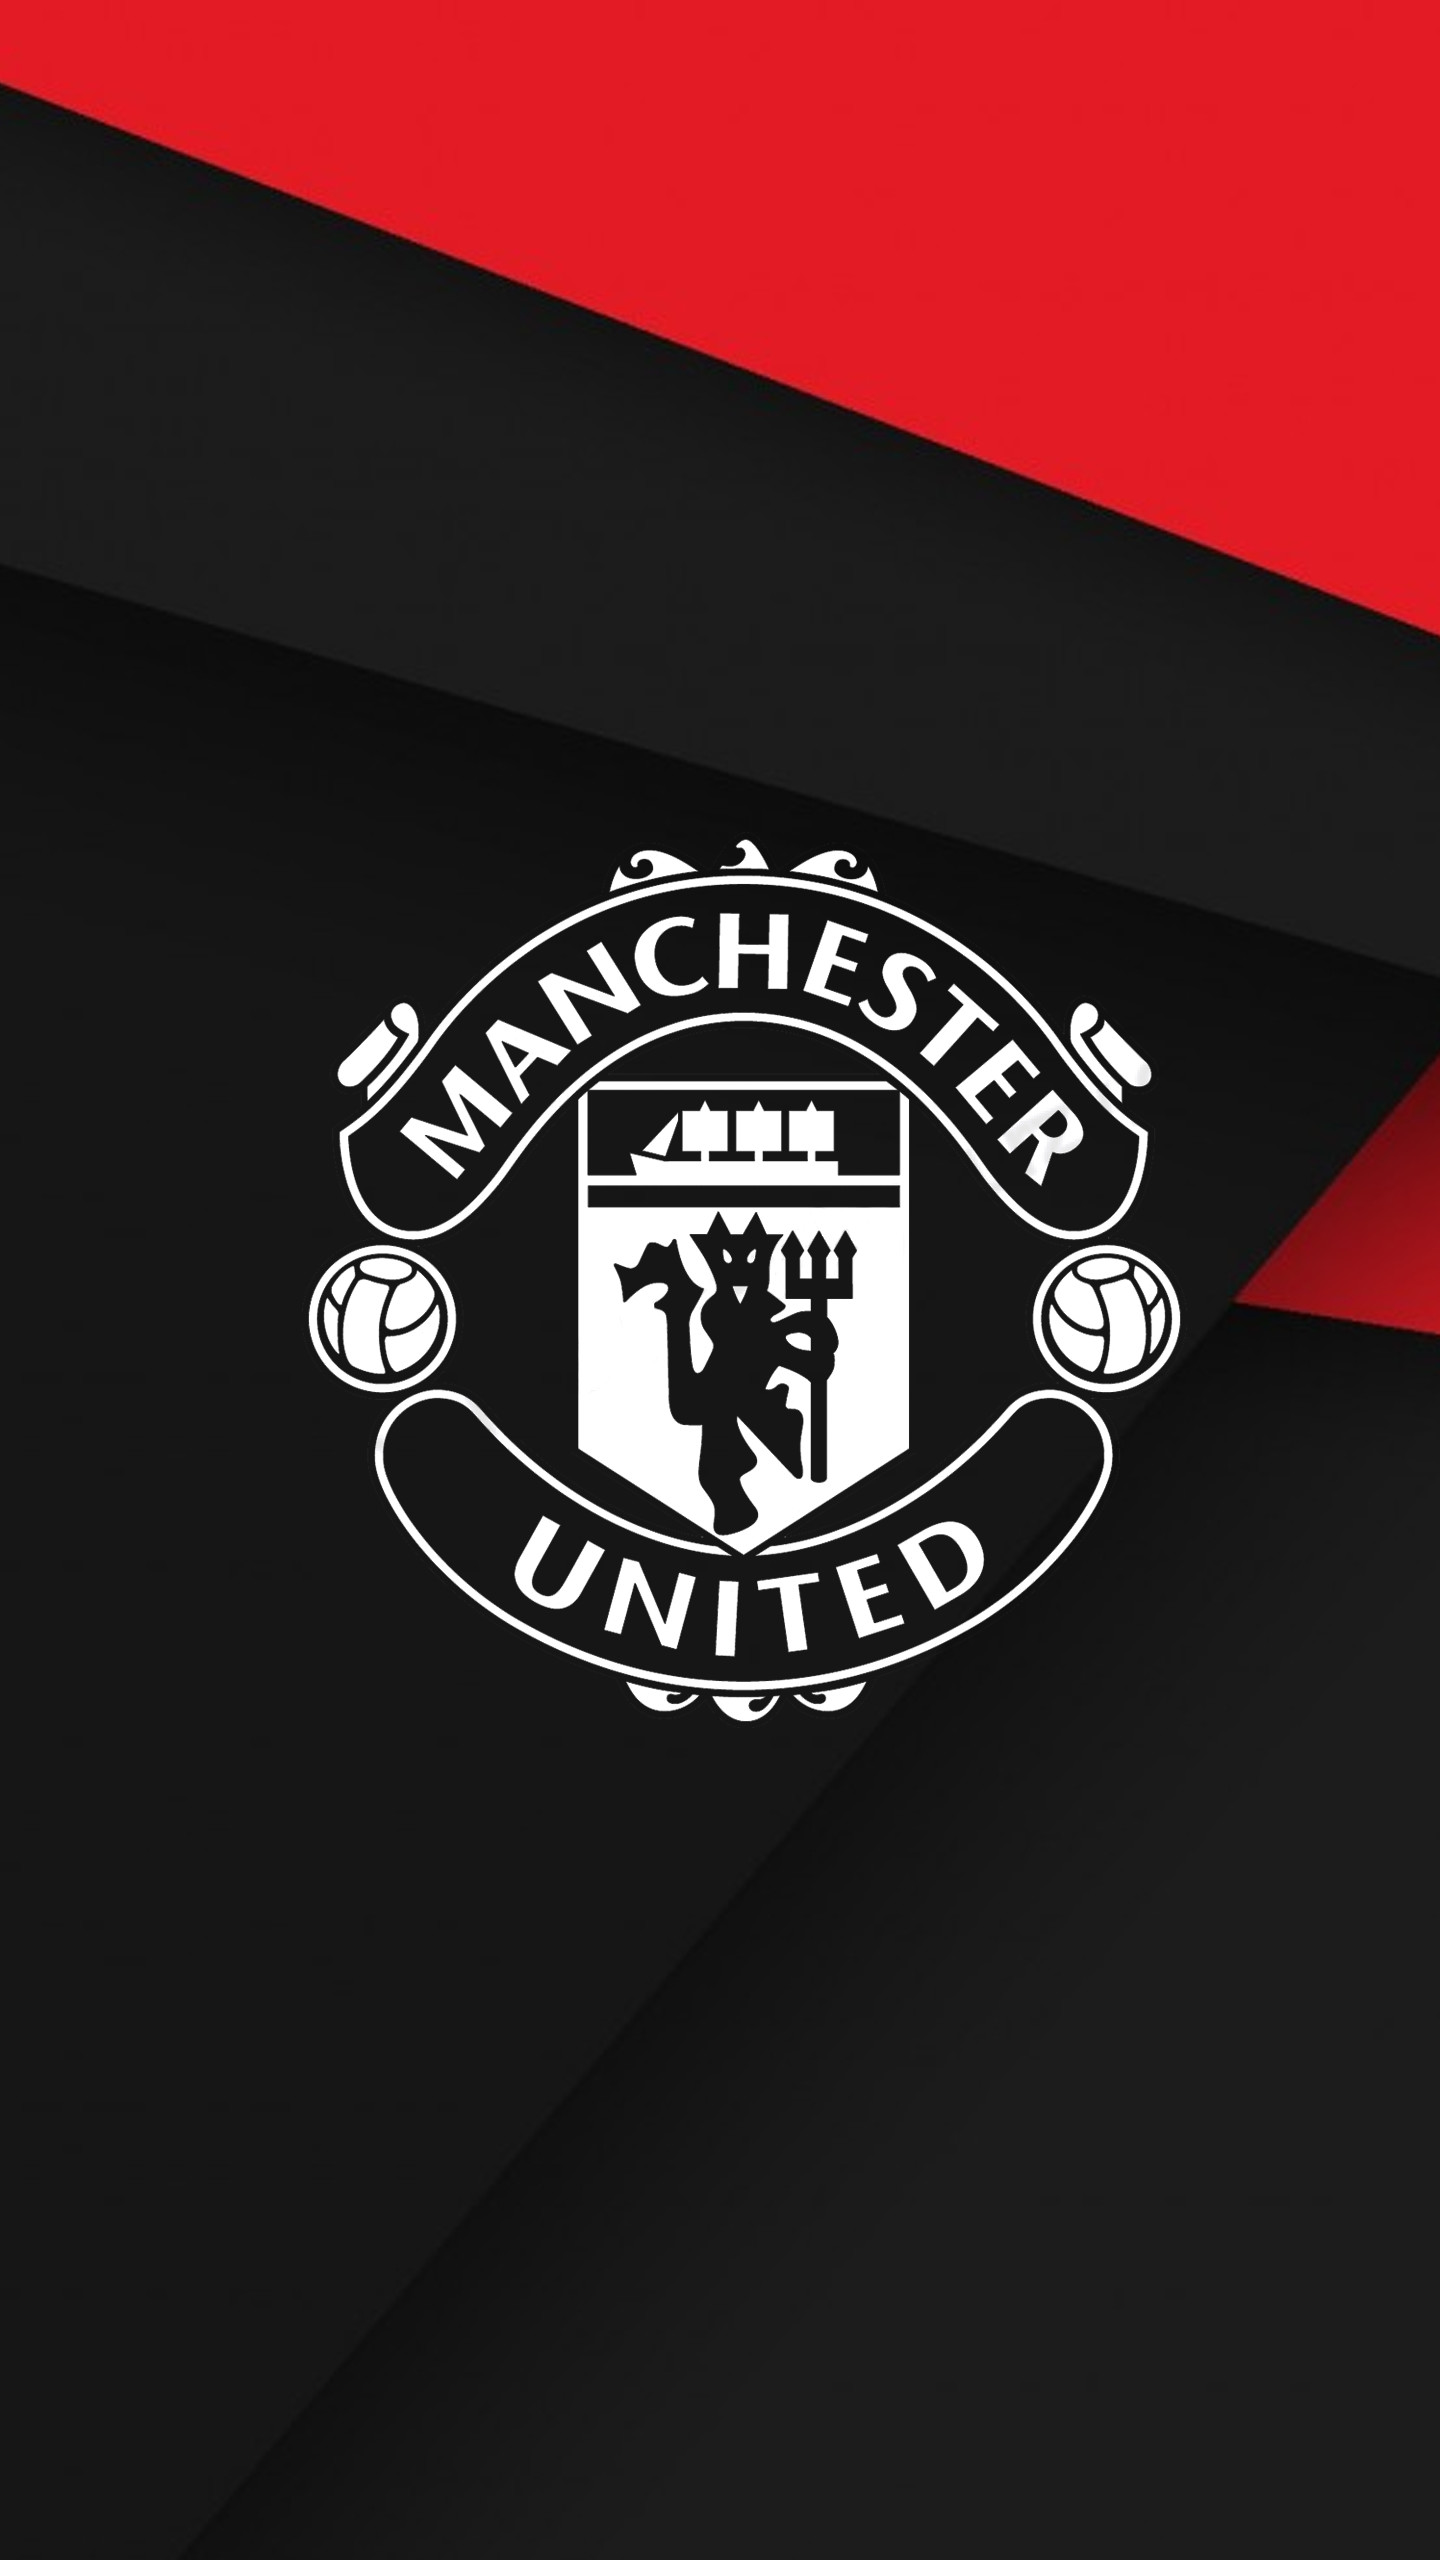 Res: 1440x2560, Top Collection of Manchester United Wallpapers: 234185369 Manchester United  Background